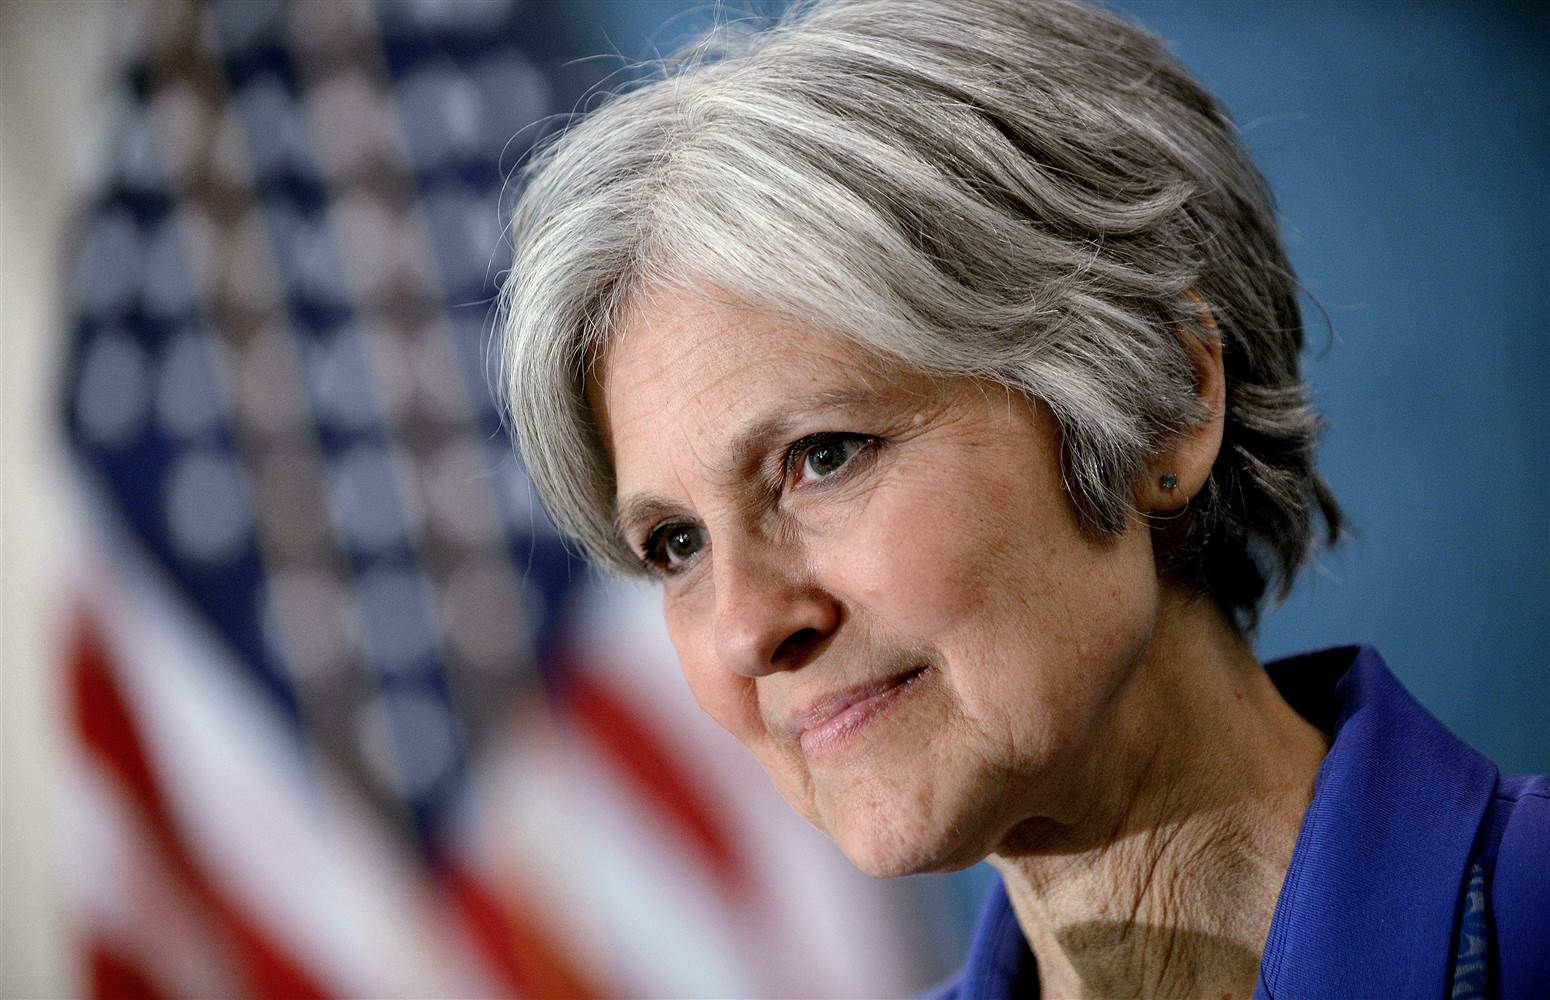 Senate Intel Committee Investigates Jill Stein For Possible Russia Collusion